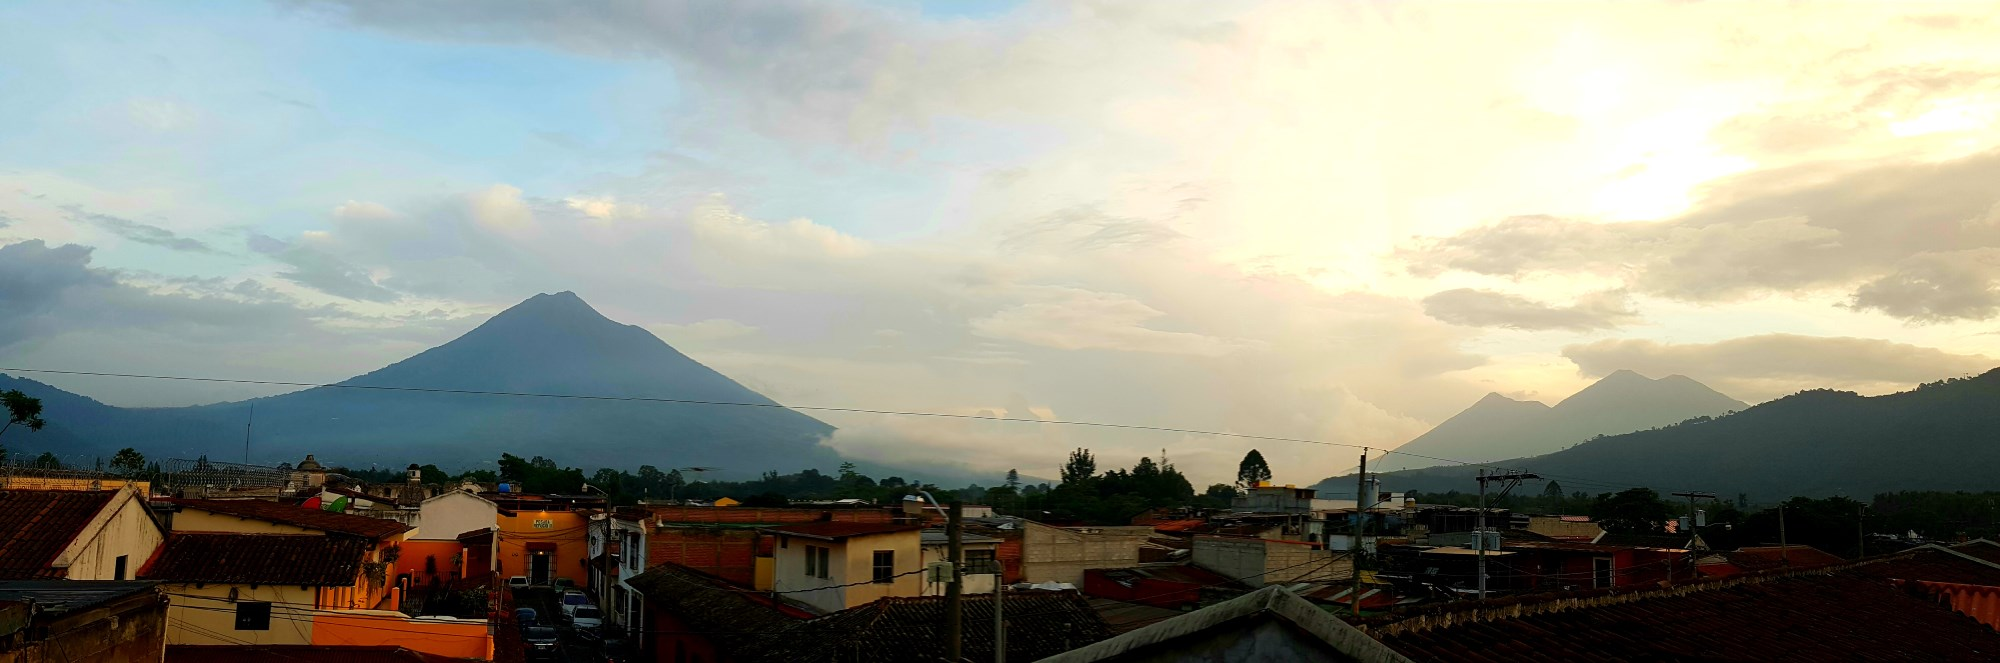 things to do antigua guatemala skyline volcano agua